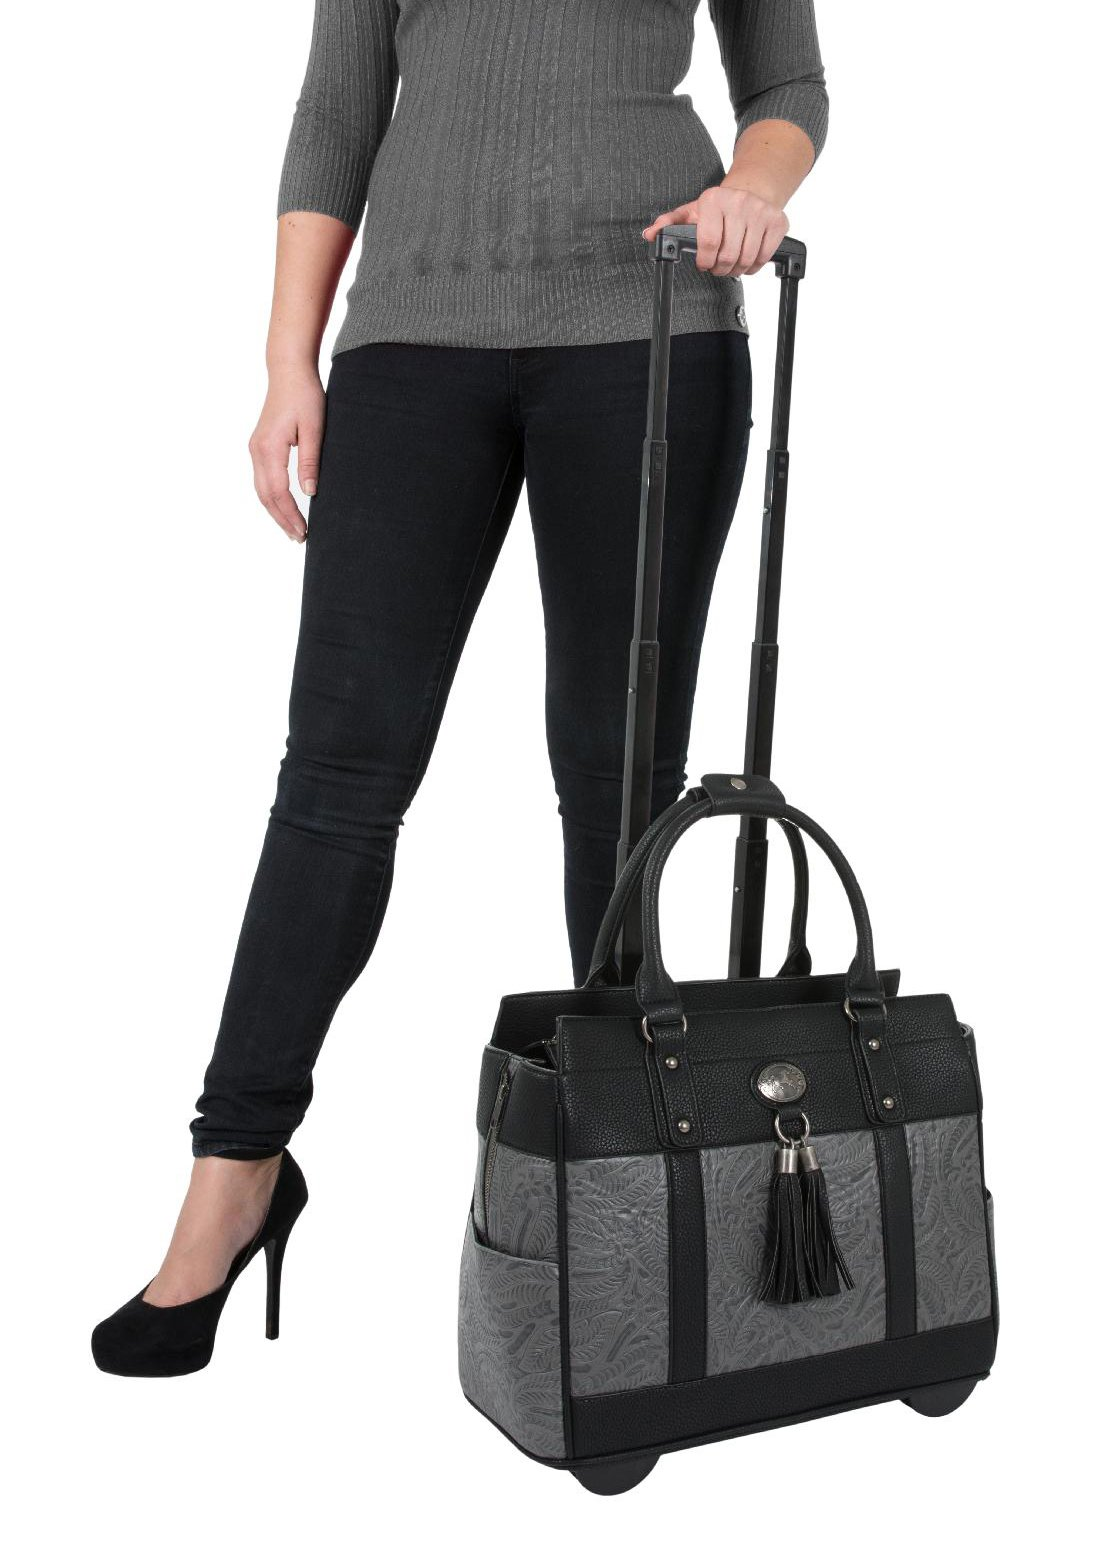 ''The Dallas 2'' Black & Grey Tooled Rolling iPad Tablet or Laptop Tote Carryall Bag by JKM and Company